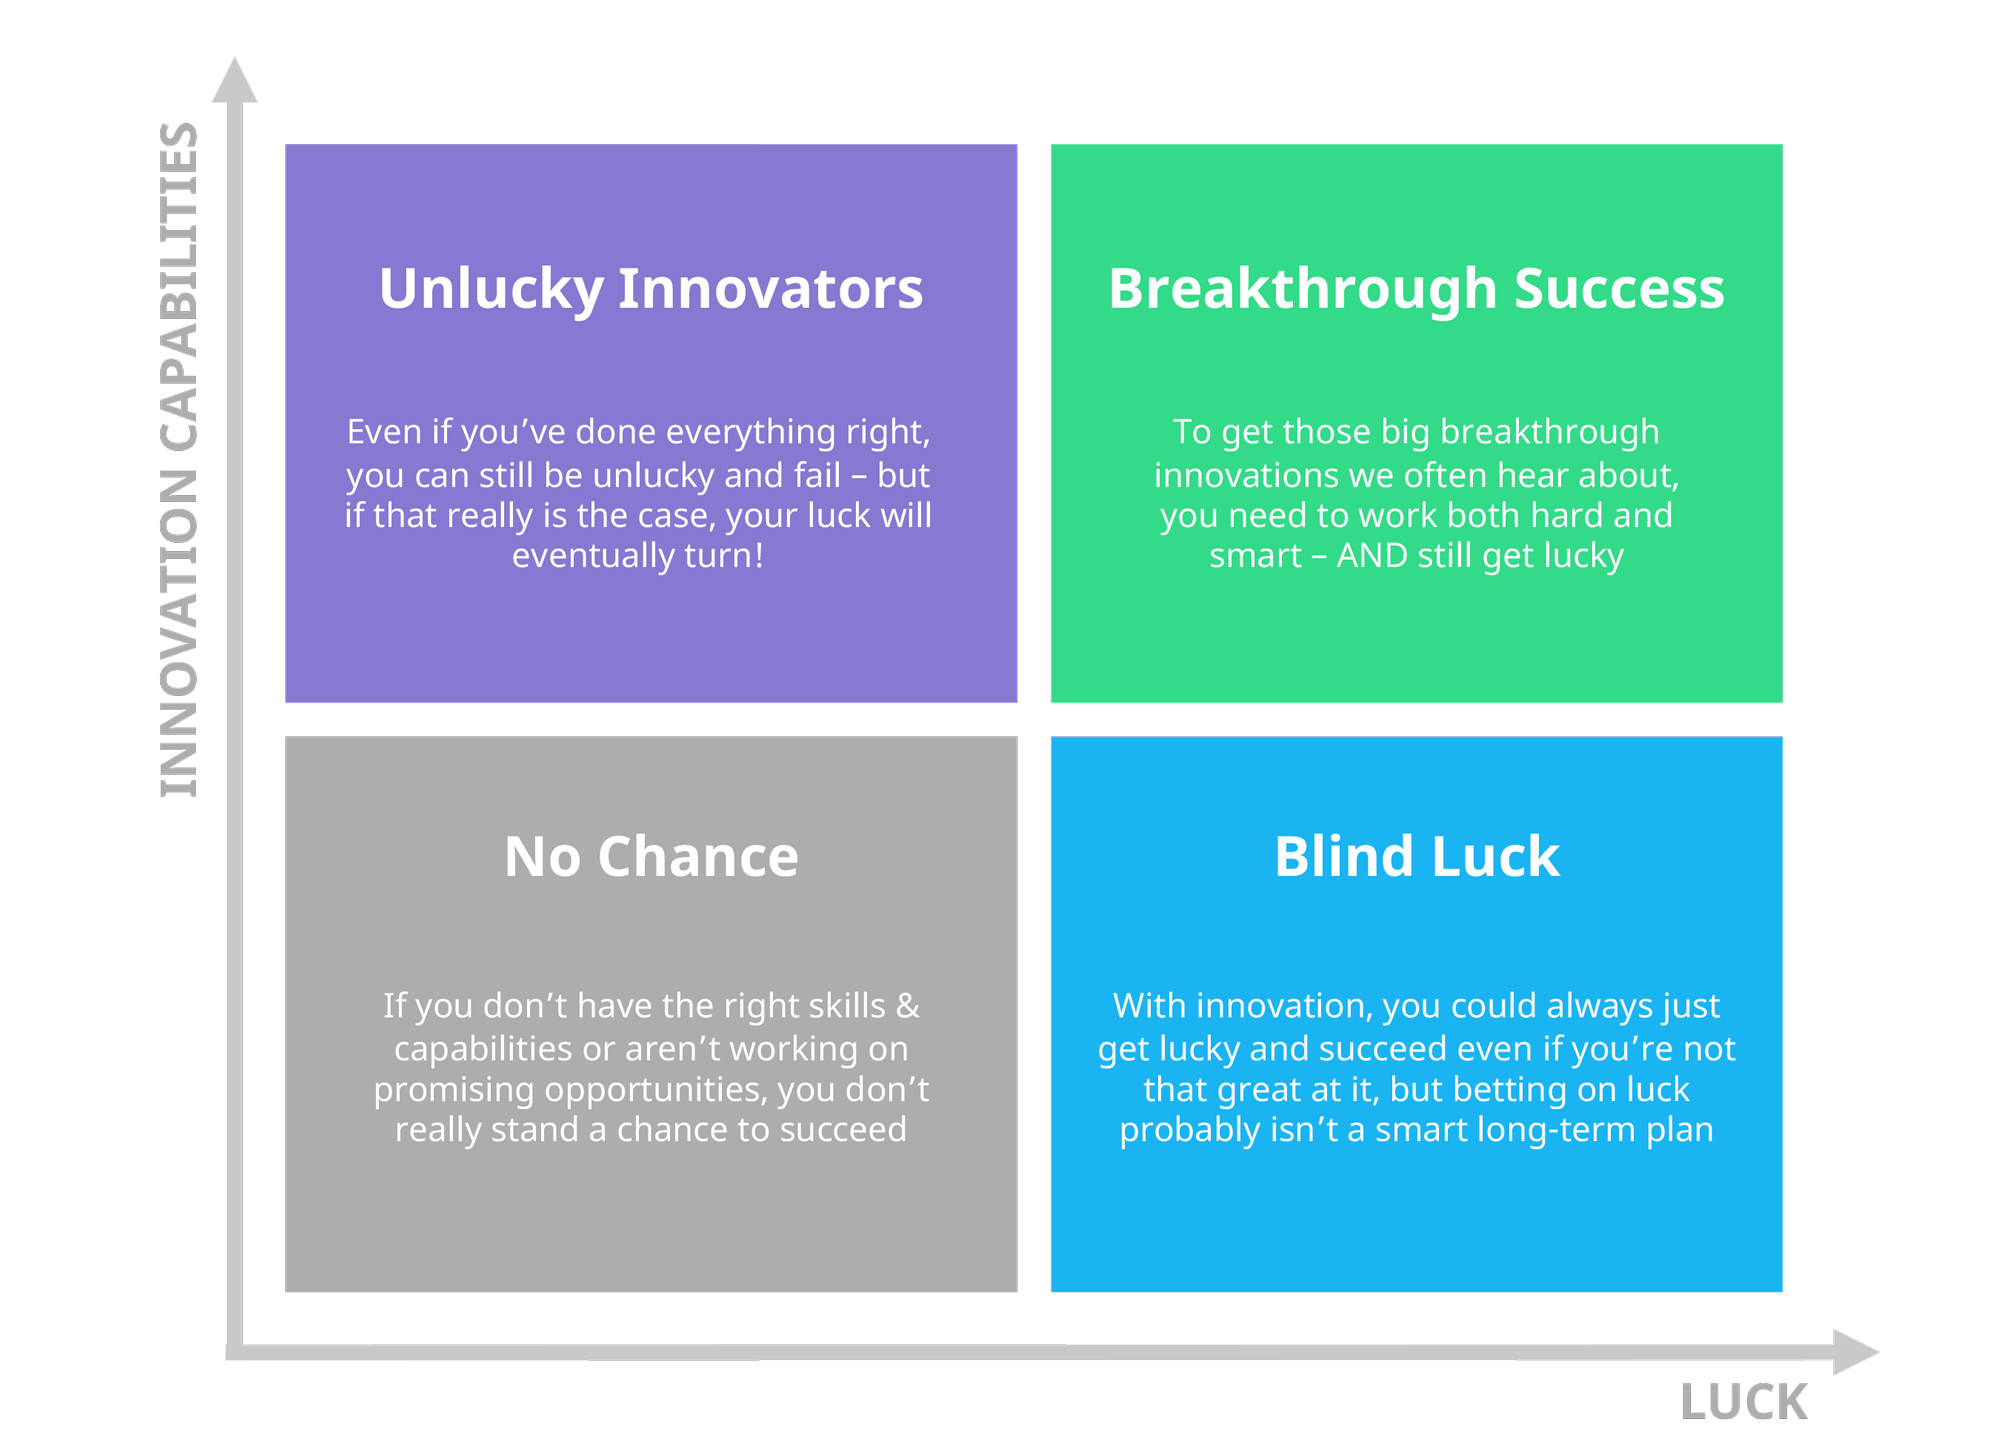 The role of luck in innovation success